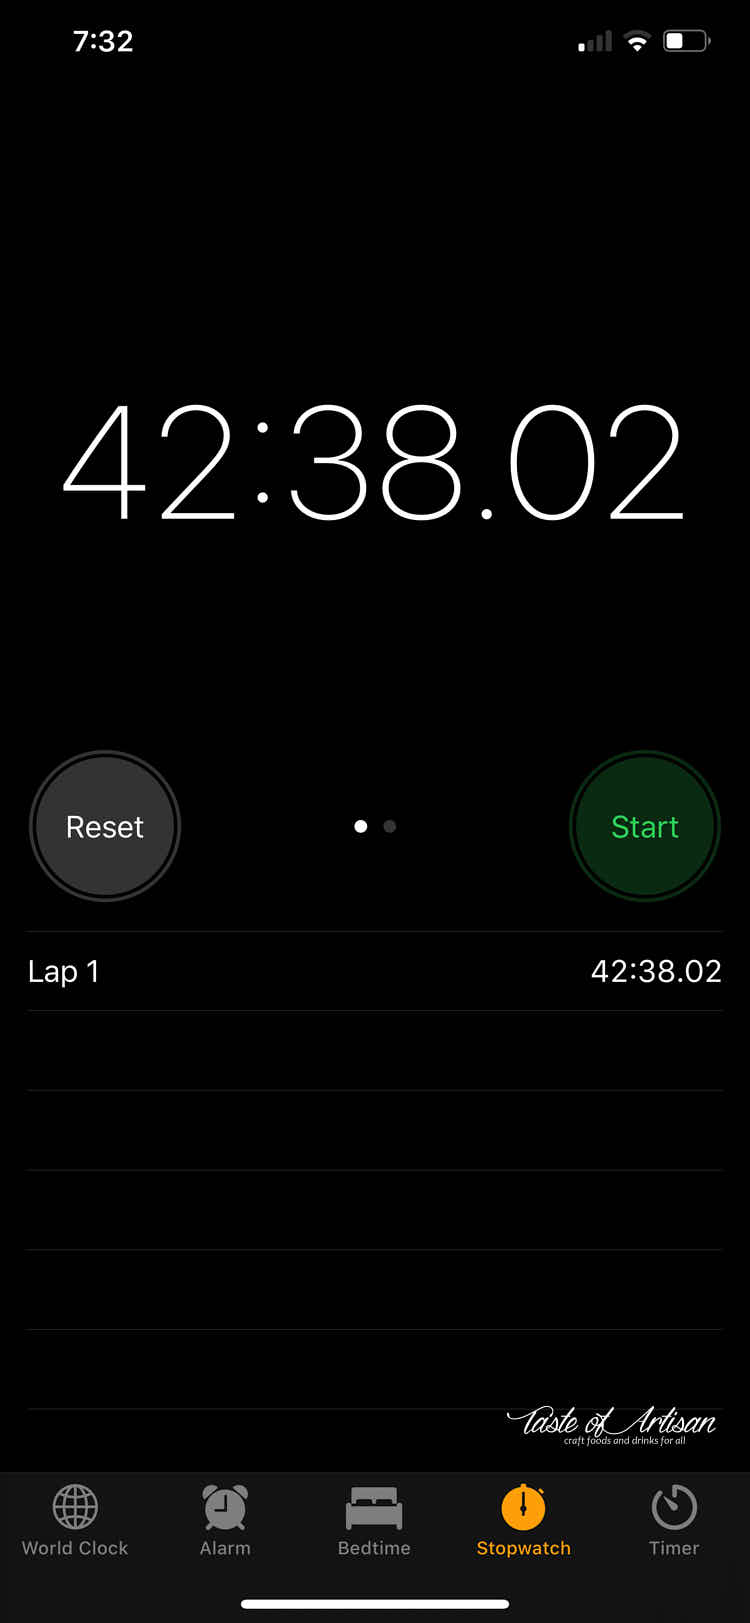 Timer that shows time it took to finish smoked kielbasa in the oven.